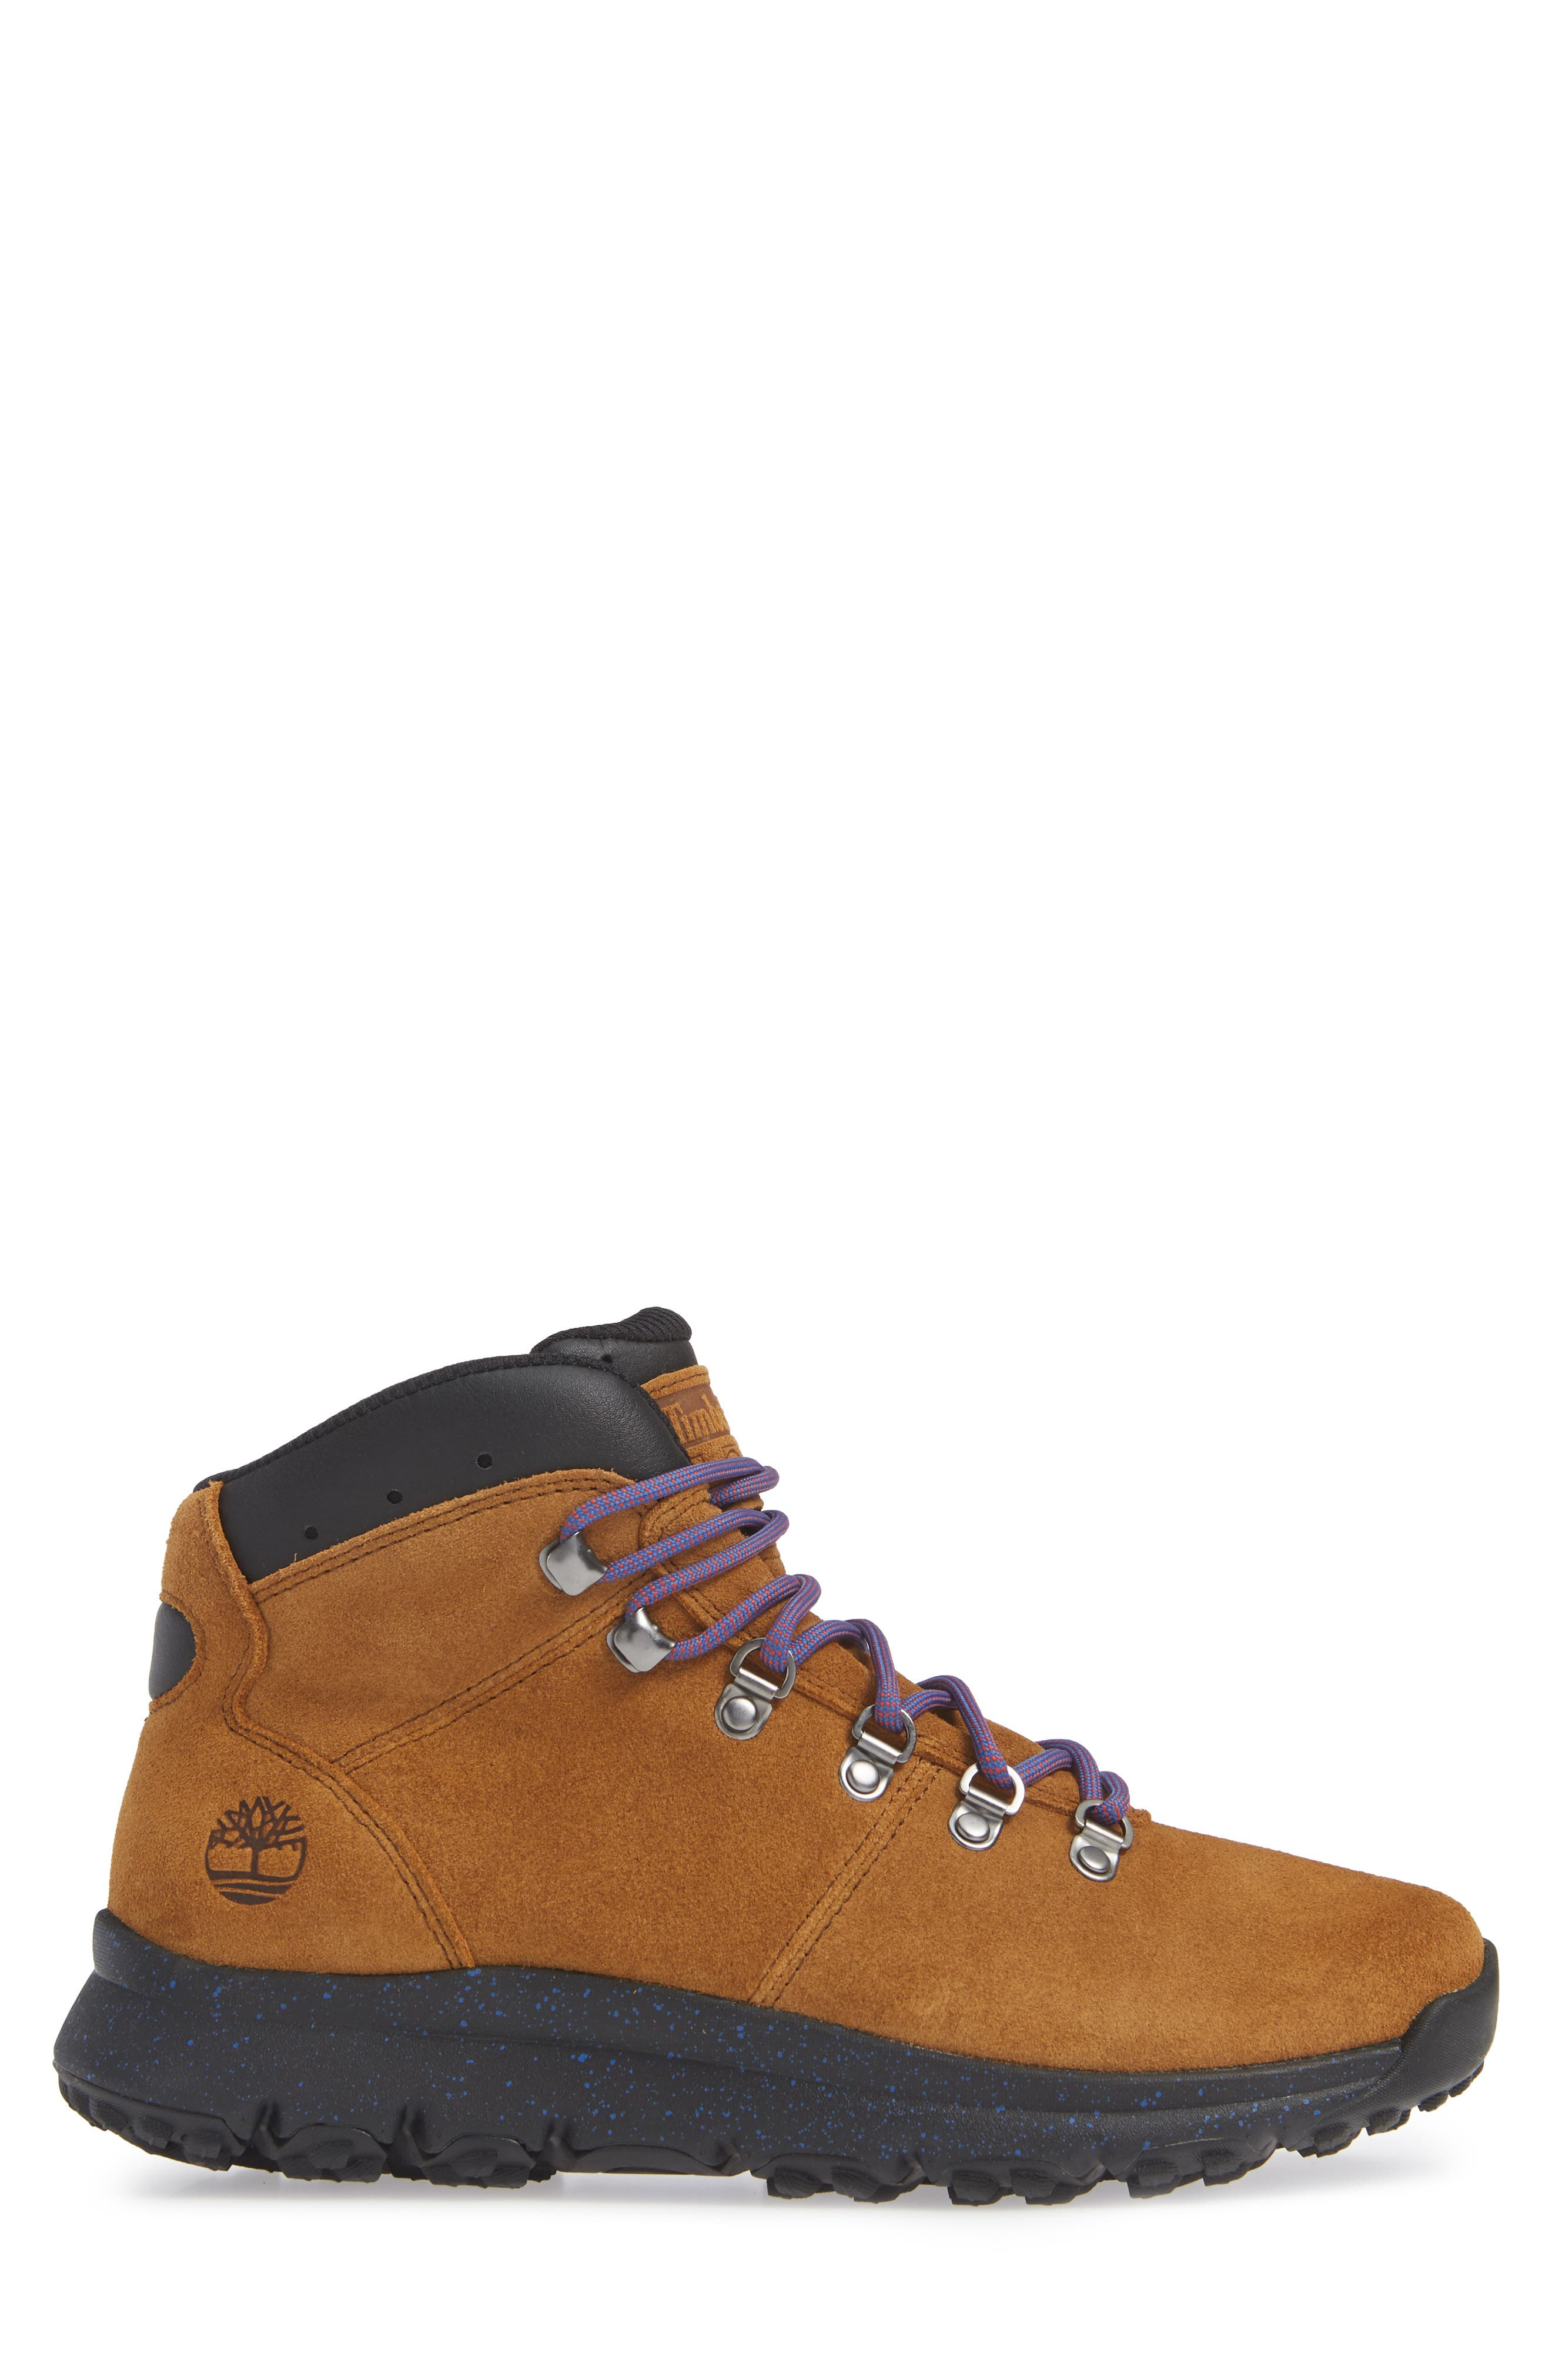 World Hiker Waterproof Boot,                             Alternate thumbnail 3, color,                             210